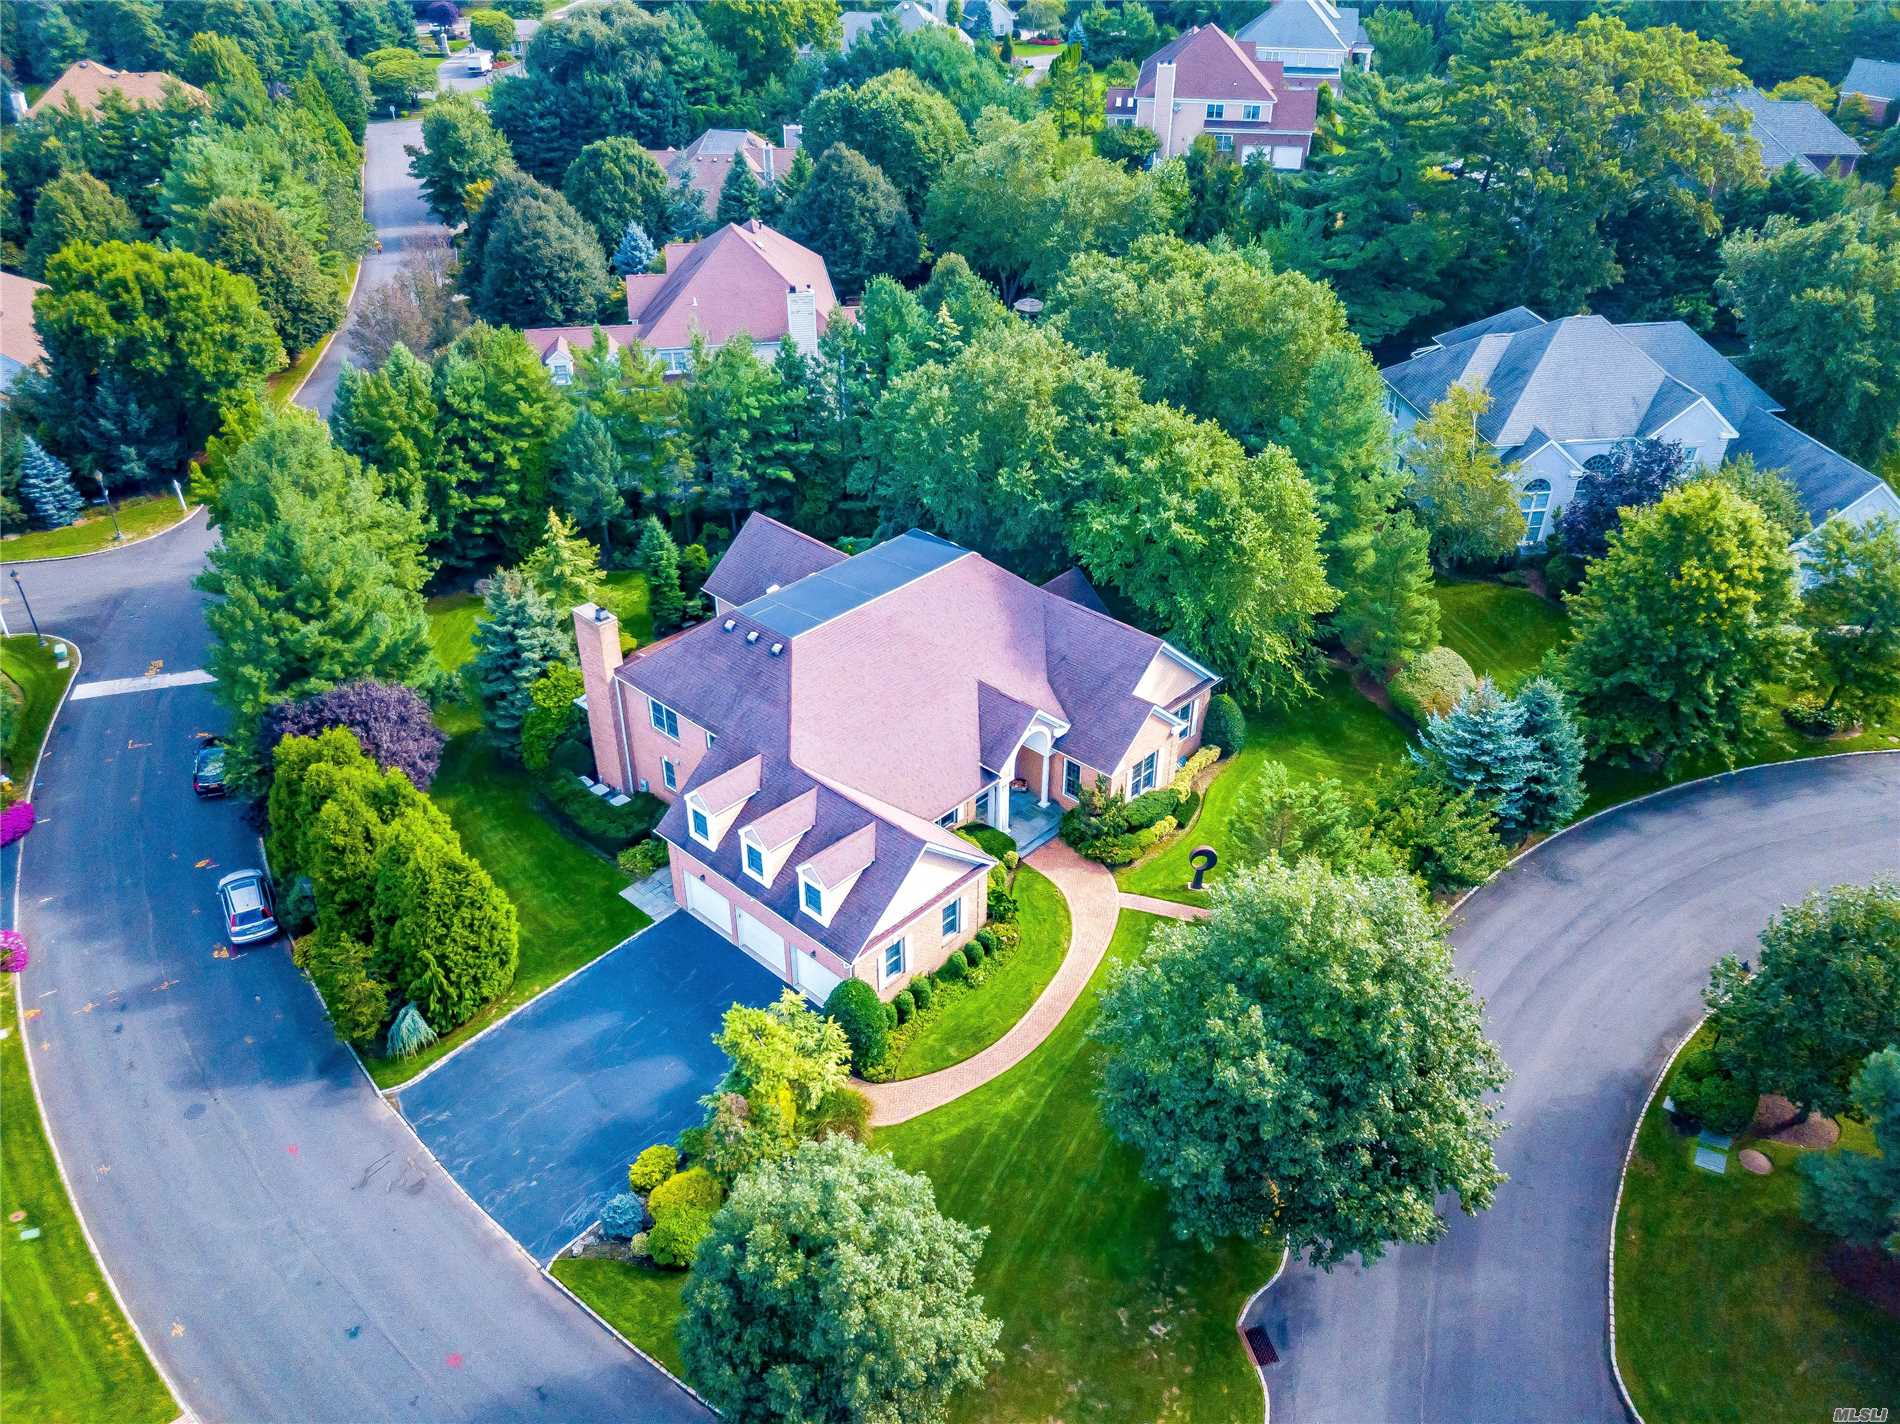 Magnificent Expanded Ranch Located In The Prestigious Stone Hill At North Hills. Private Gated Community Offering 5 Bedrooms 3.5 Baths, Grand Entry Foyer, Living Room With Vaulted Ceilings, Formal Dining Room, Gourmet Kitchen, Custom Built Ins, Massive Master Suite With Sophisticated Trims And Moldings Thru Out. Spacious Backyard With Beautiful Landscaping On A .69 Acre Lot. Three Car Garage. Perfect Home For Large Family And Entertaining.